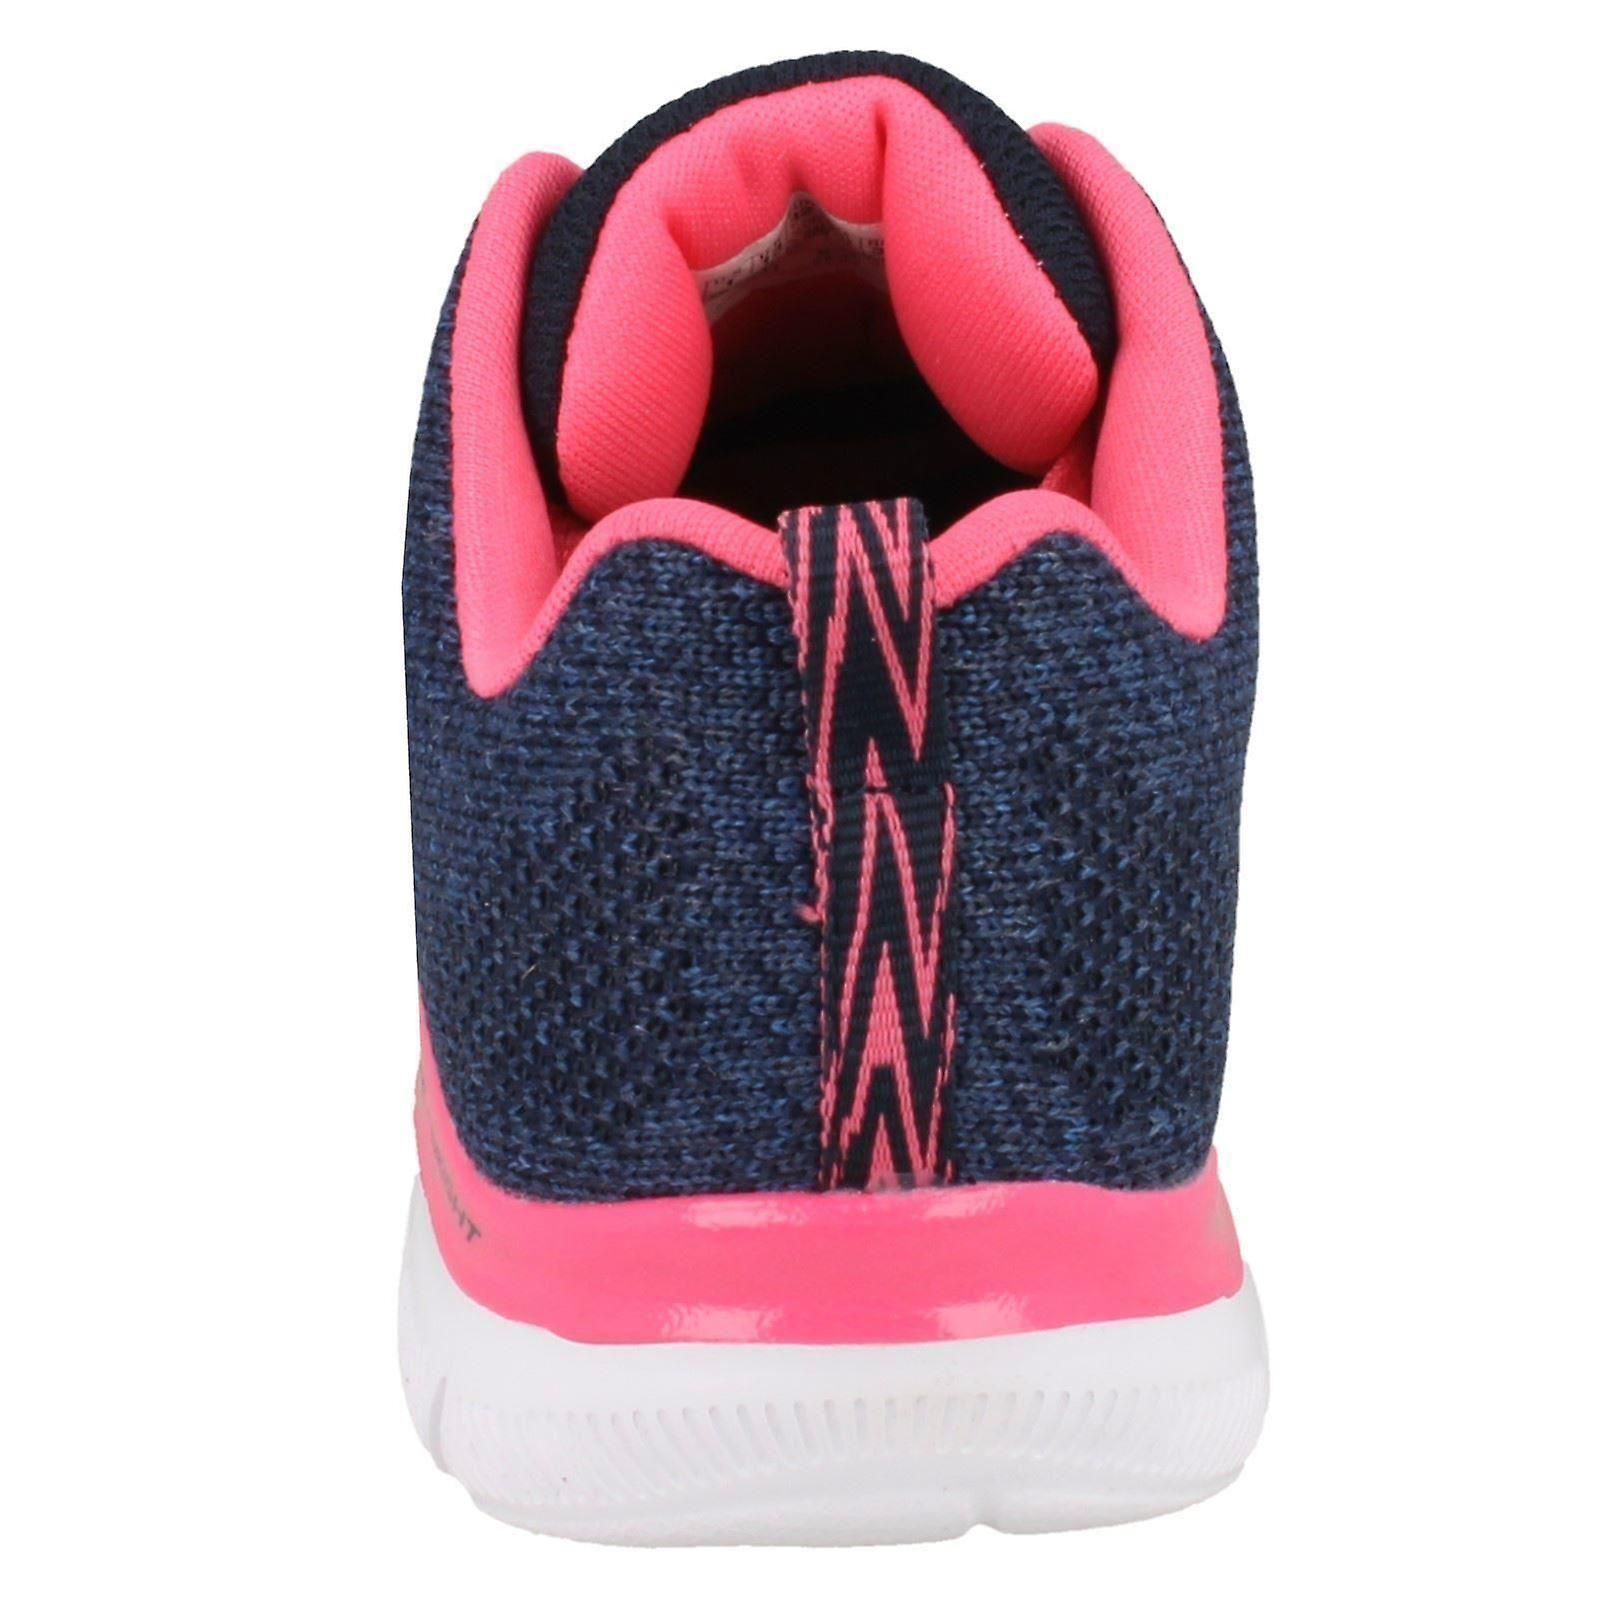 Girls Skechers Skech Knit Trainers High Energy 81655